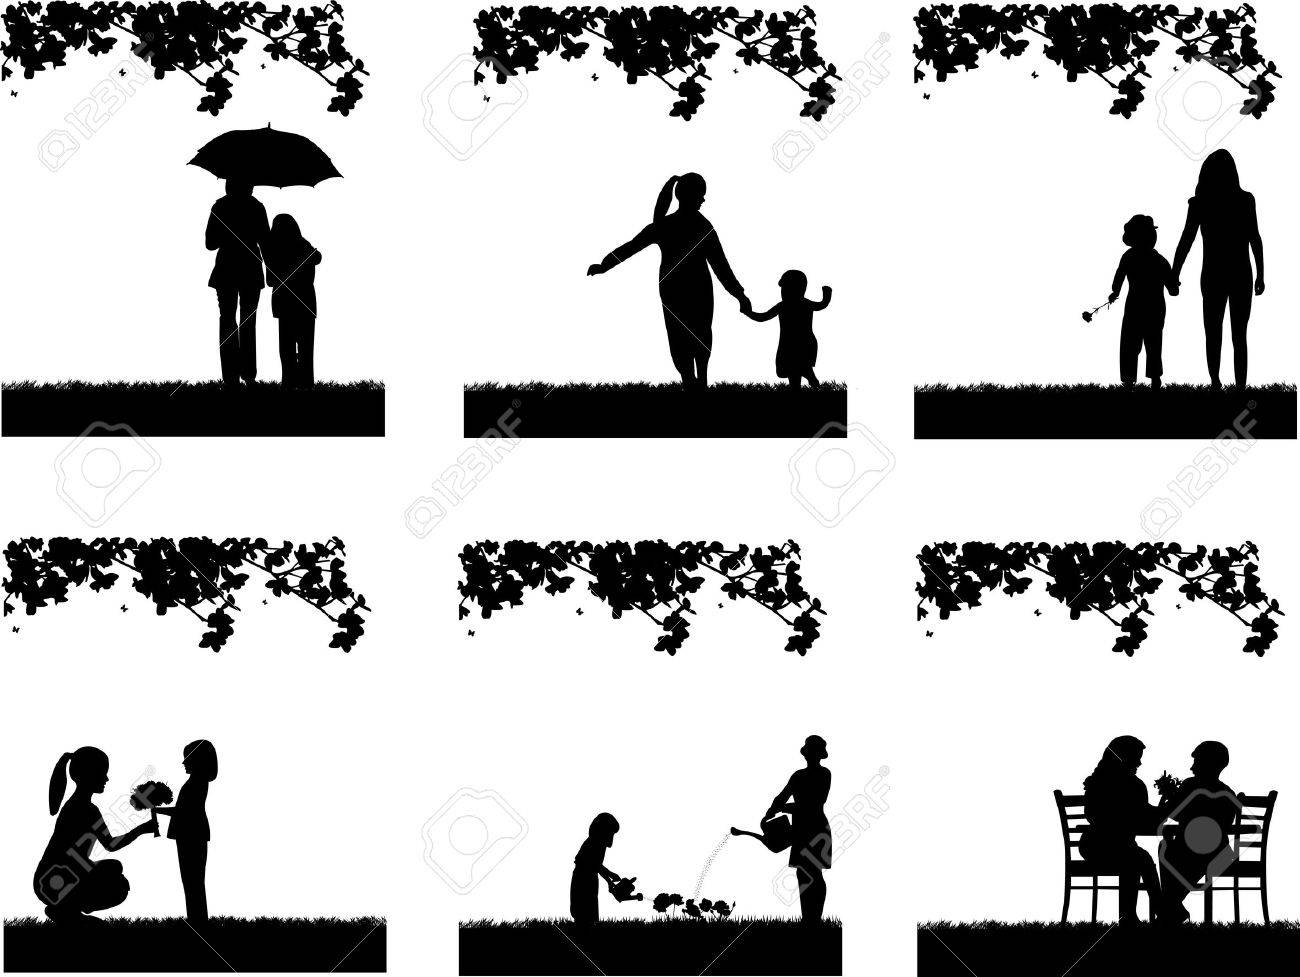 Mother s day celebration between mother and daughter in park, beautiful concept wallpaper for happy mother s day celebration, one in the series of similar images silhouette Stock Vector - 19137693